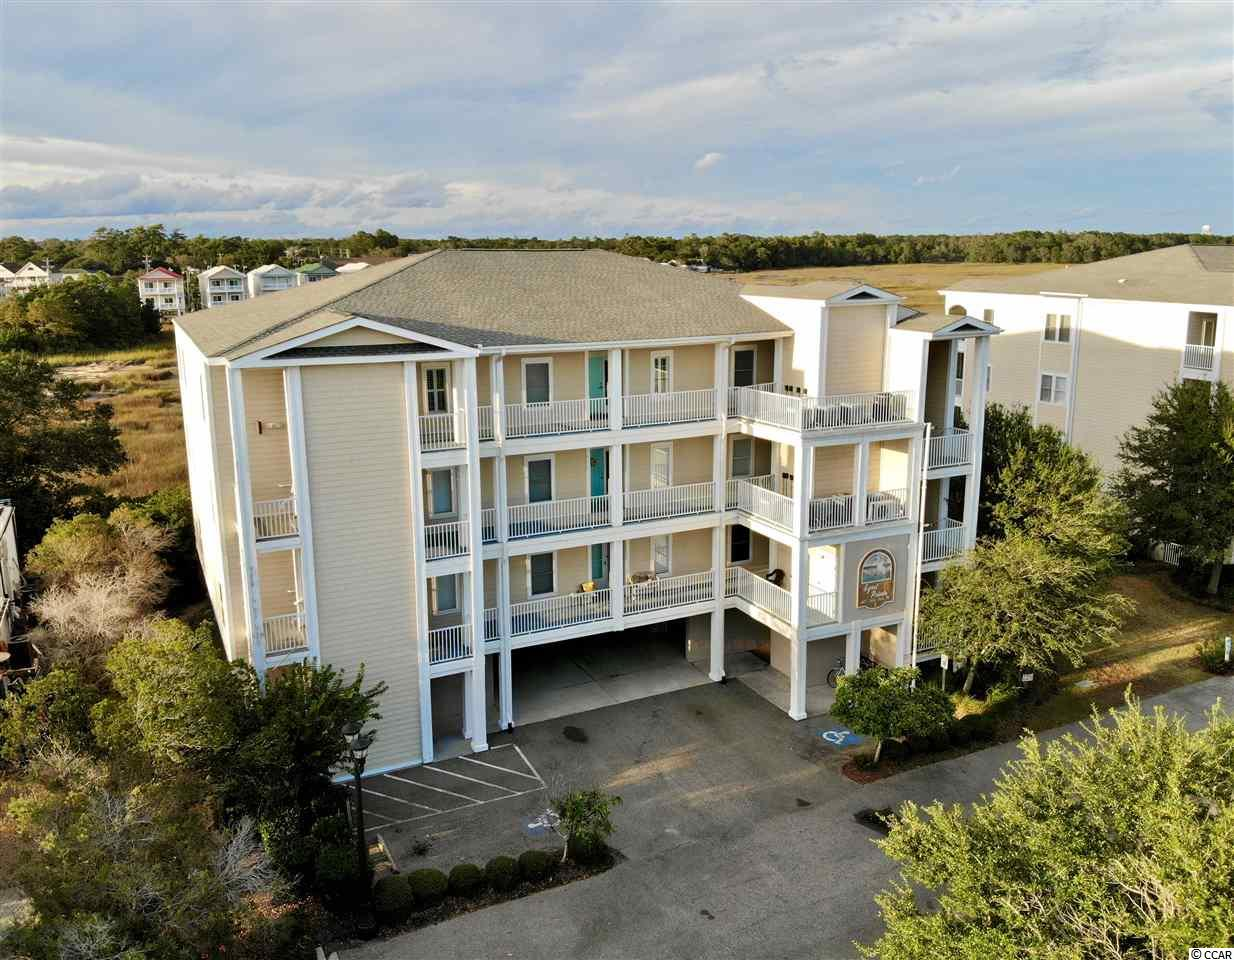 Impeccable 2 bedroom 2 bath condo in Egret Pointe South in Cherry Grove, only a golf cart ride from the ocean! This fabulous top floor, elevator access, end unit condo is being sold fully furnished with all appliances conveying! Beautiful and practical tile floors, that have the look of hardwood flooring, run throughout living, dining, and bedrooms. Some other charming features include plantation shutters on every window and crown moulding throughout most of the unit. The floor plan is very open and the main living space has a nice flow. The living room is spacious with a gas fireplace and sliding glass doors leading out to the screened porch overlooking the marsh! The living/dining area also has a dry bar with arched detail and shelving. In the kitchen you will find updated stainless steel appliances, a pantry, a lovely tile backsplash, and a large breakfast bar. The master bedroom has an ensuite, tray ceiling, walk-in closet, and its very own gas fireplace! The second bedroom is good sized fitting a double and twin bed plus it has a roomy walk-in closet. This bedroom has its own full bath as well but this bathroom is also accessible by a door to the main living space. This great unit would make a fantastic vacation home or investment property! This unit has a very spacious parking space under cover of the building, golf cart parking, and a storage closet by your parking space. Egret Pointe South is a quiet community with a pool, just a couple of minutes from Cherry Grove Beach!